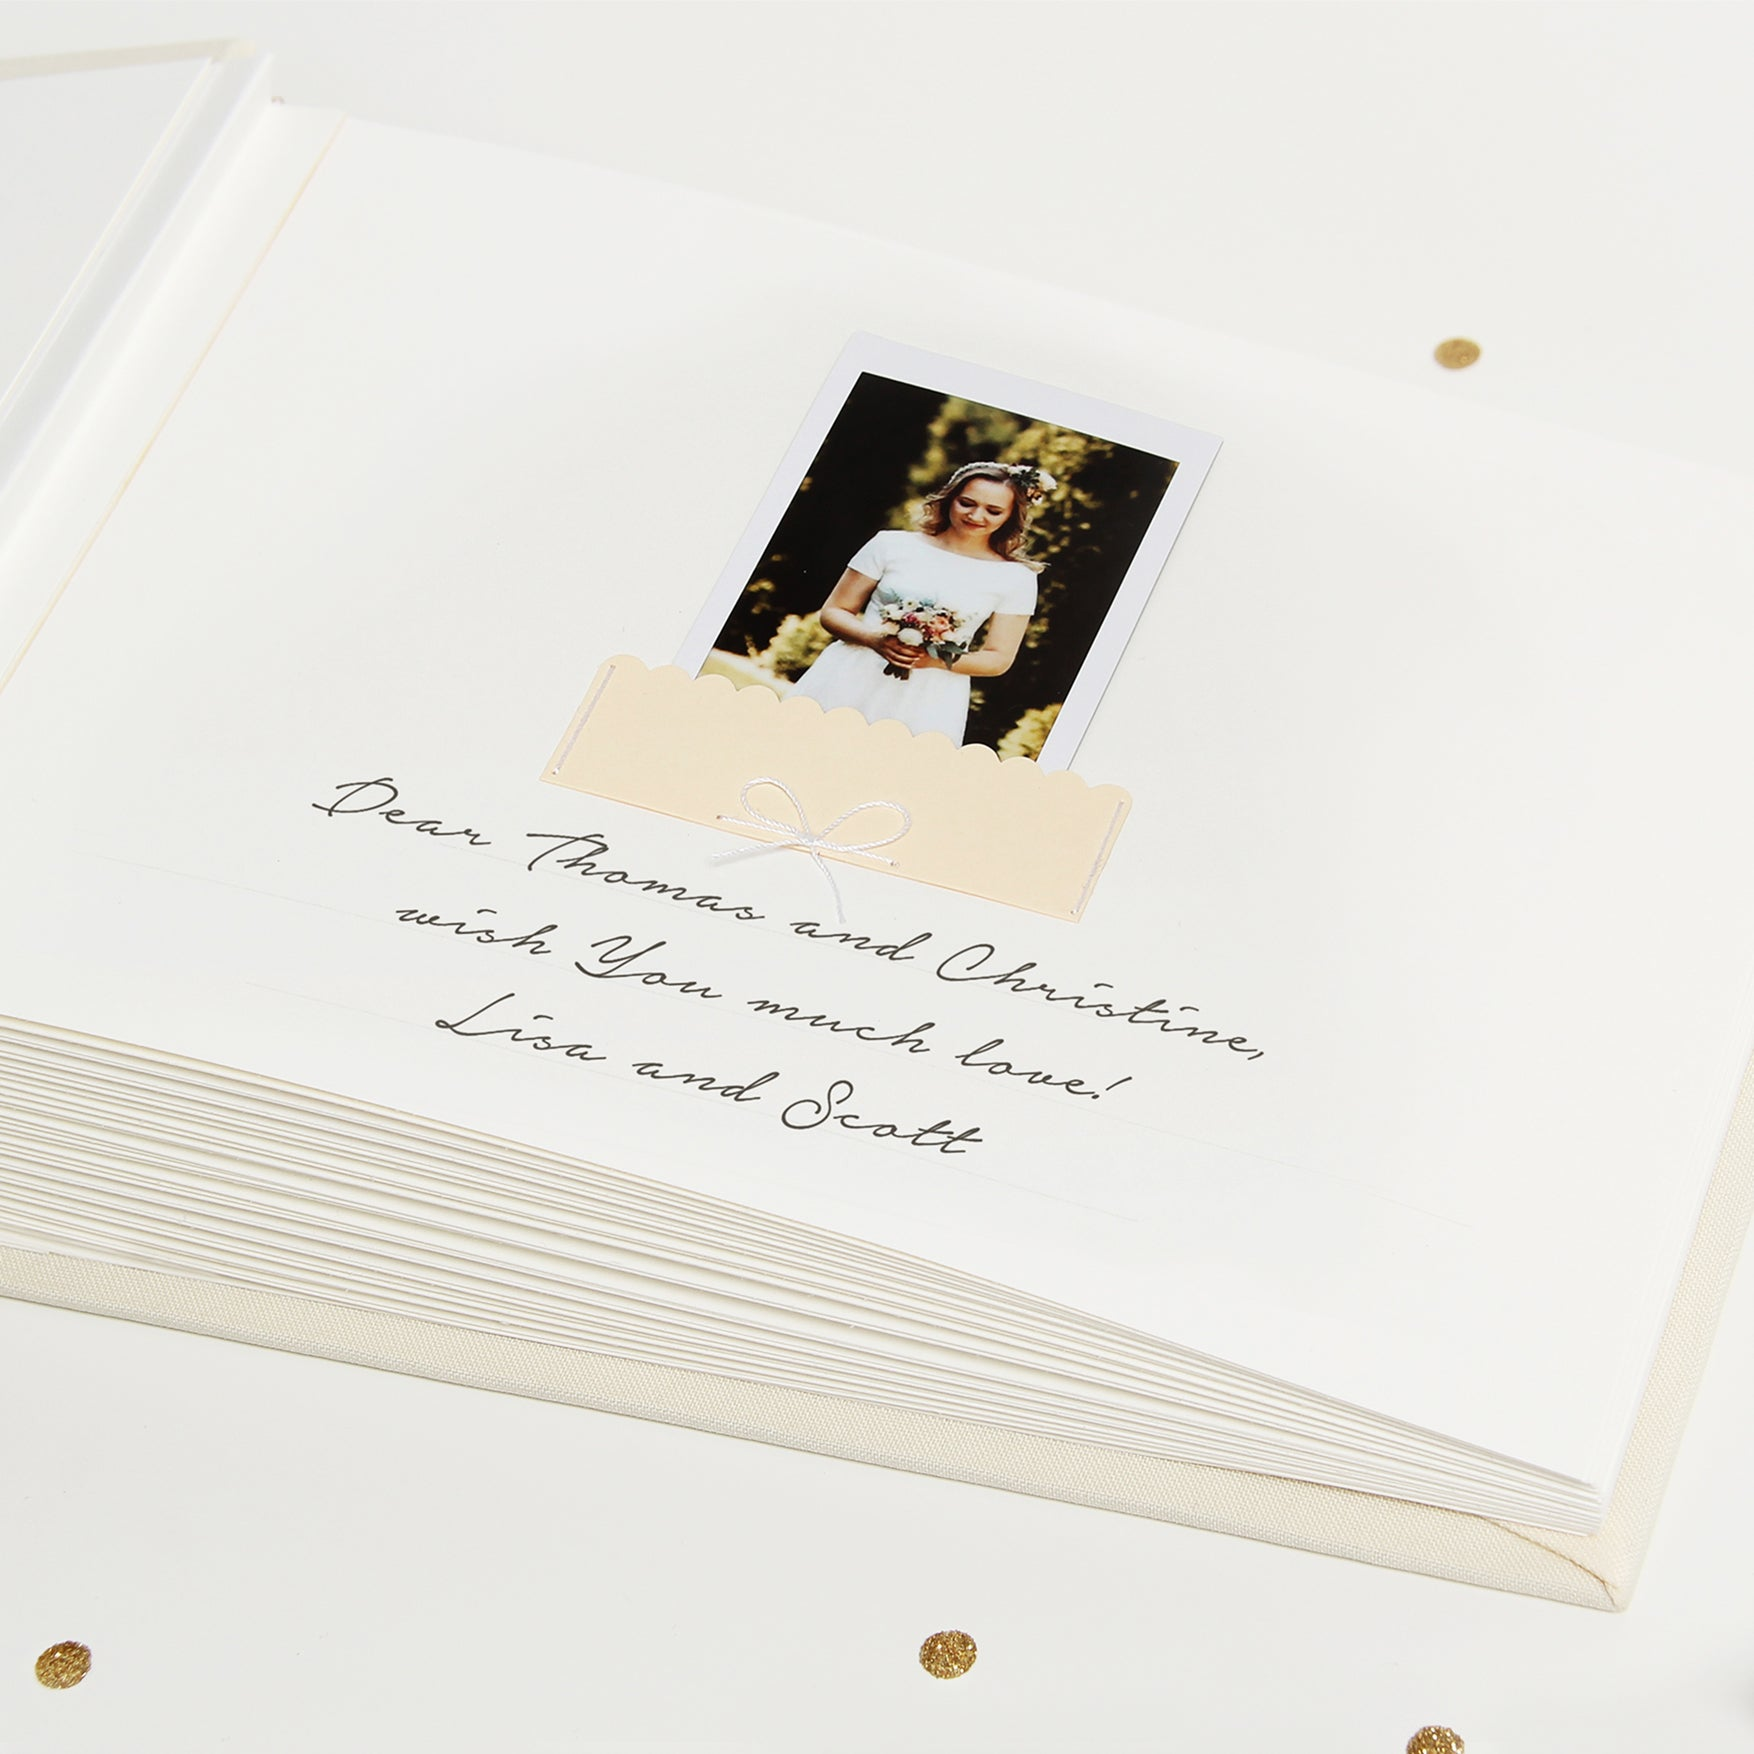 Guest Book Sign in Book Instant Album Ivory with Gold Glitter Lettering by Liumy - Liumy